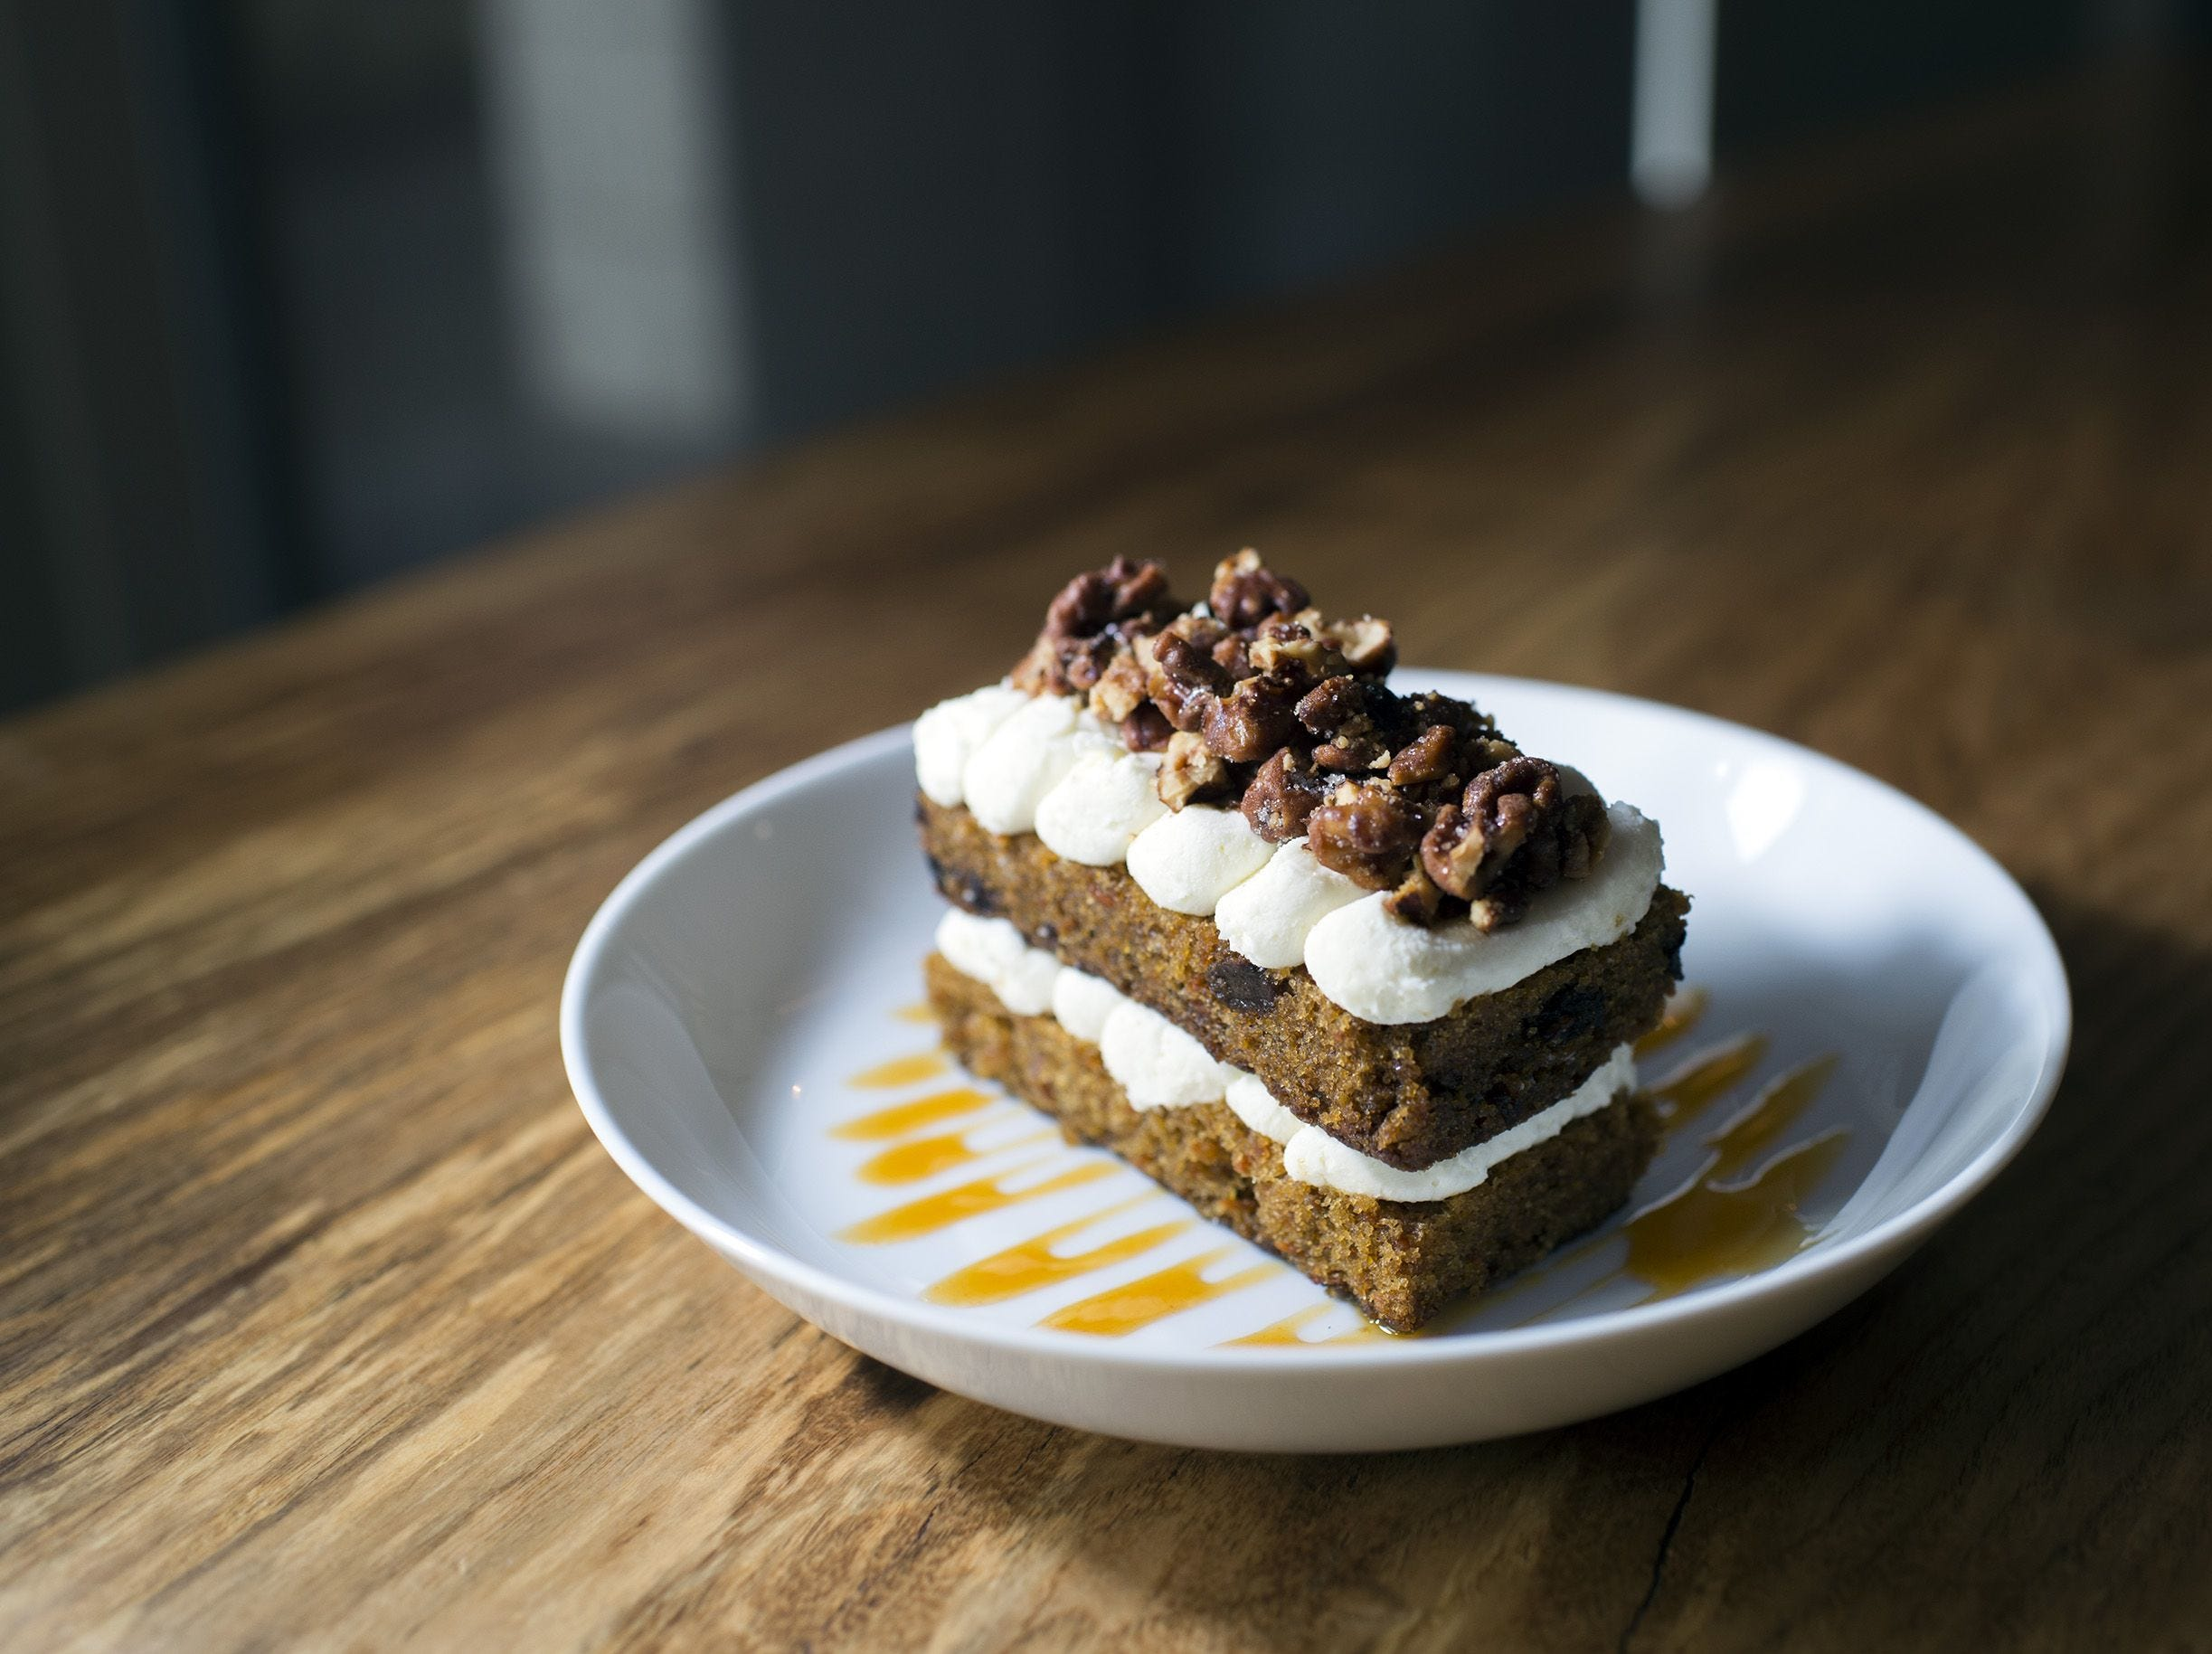 Carrot cake from Hearthside in Collingswood.